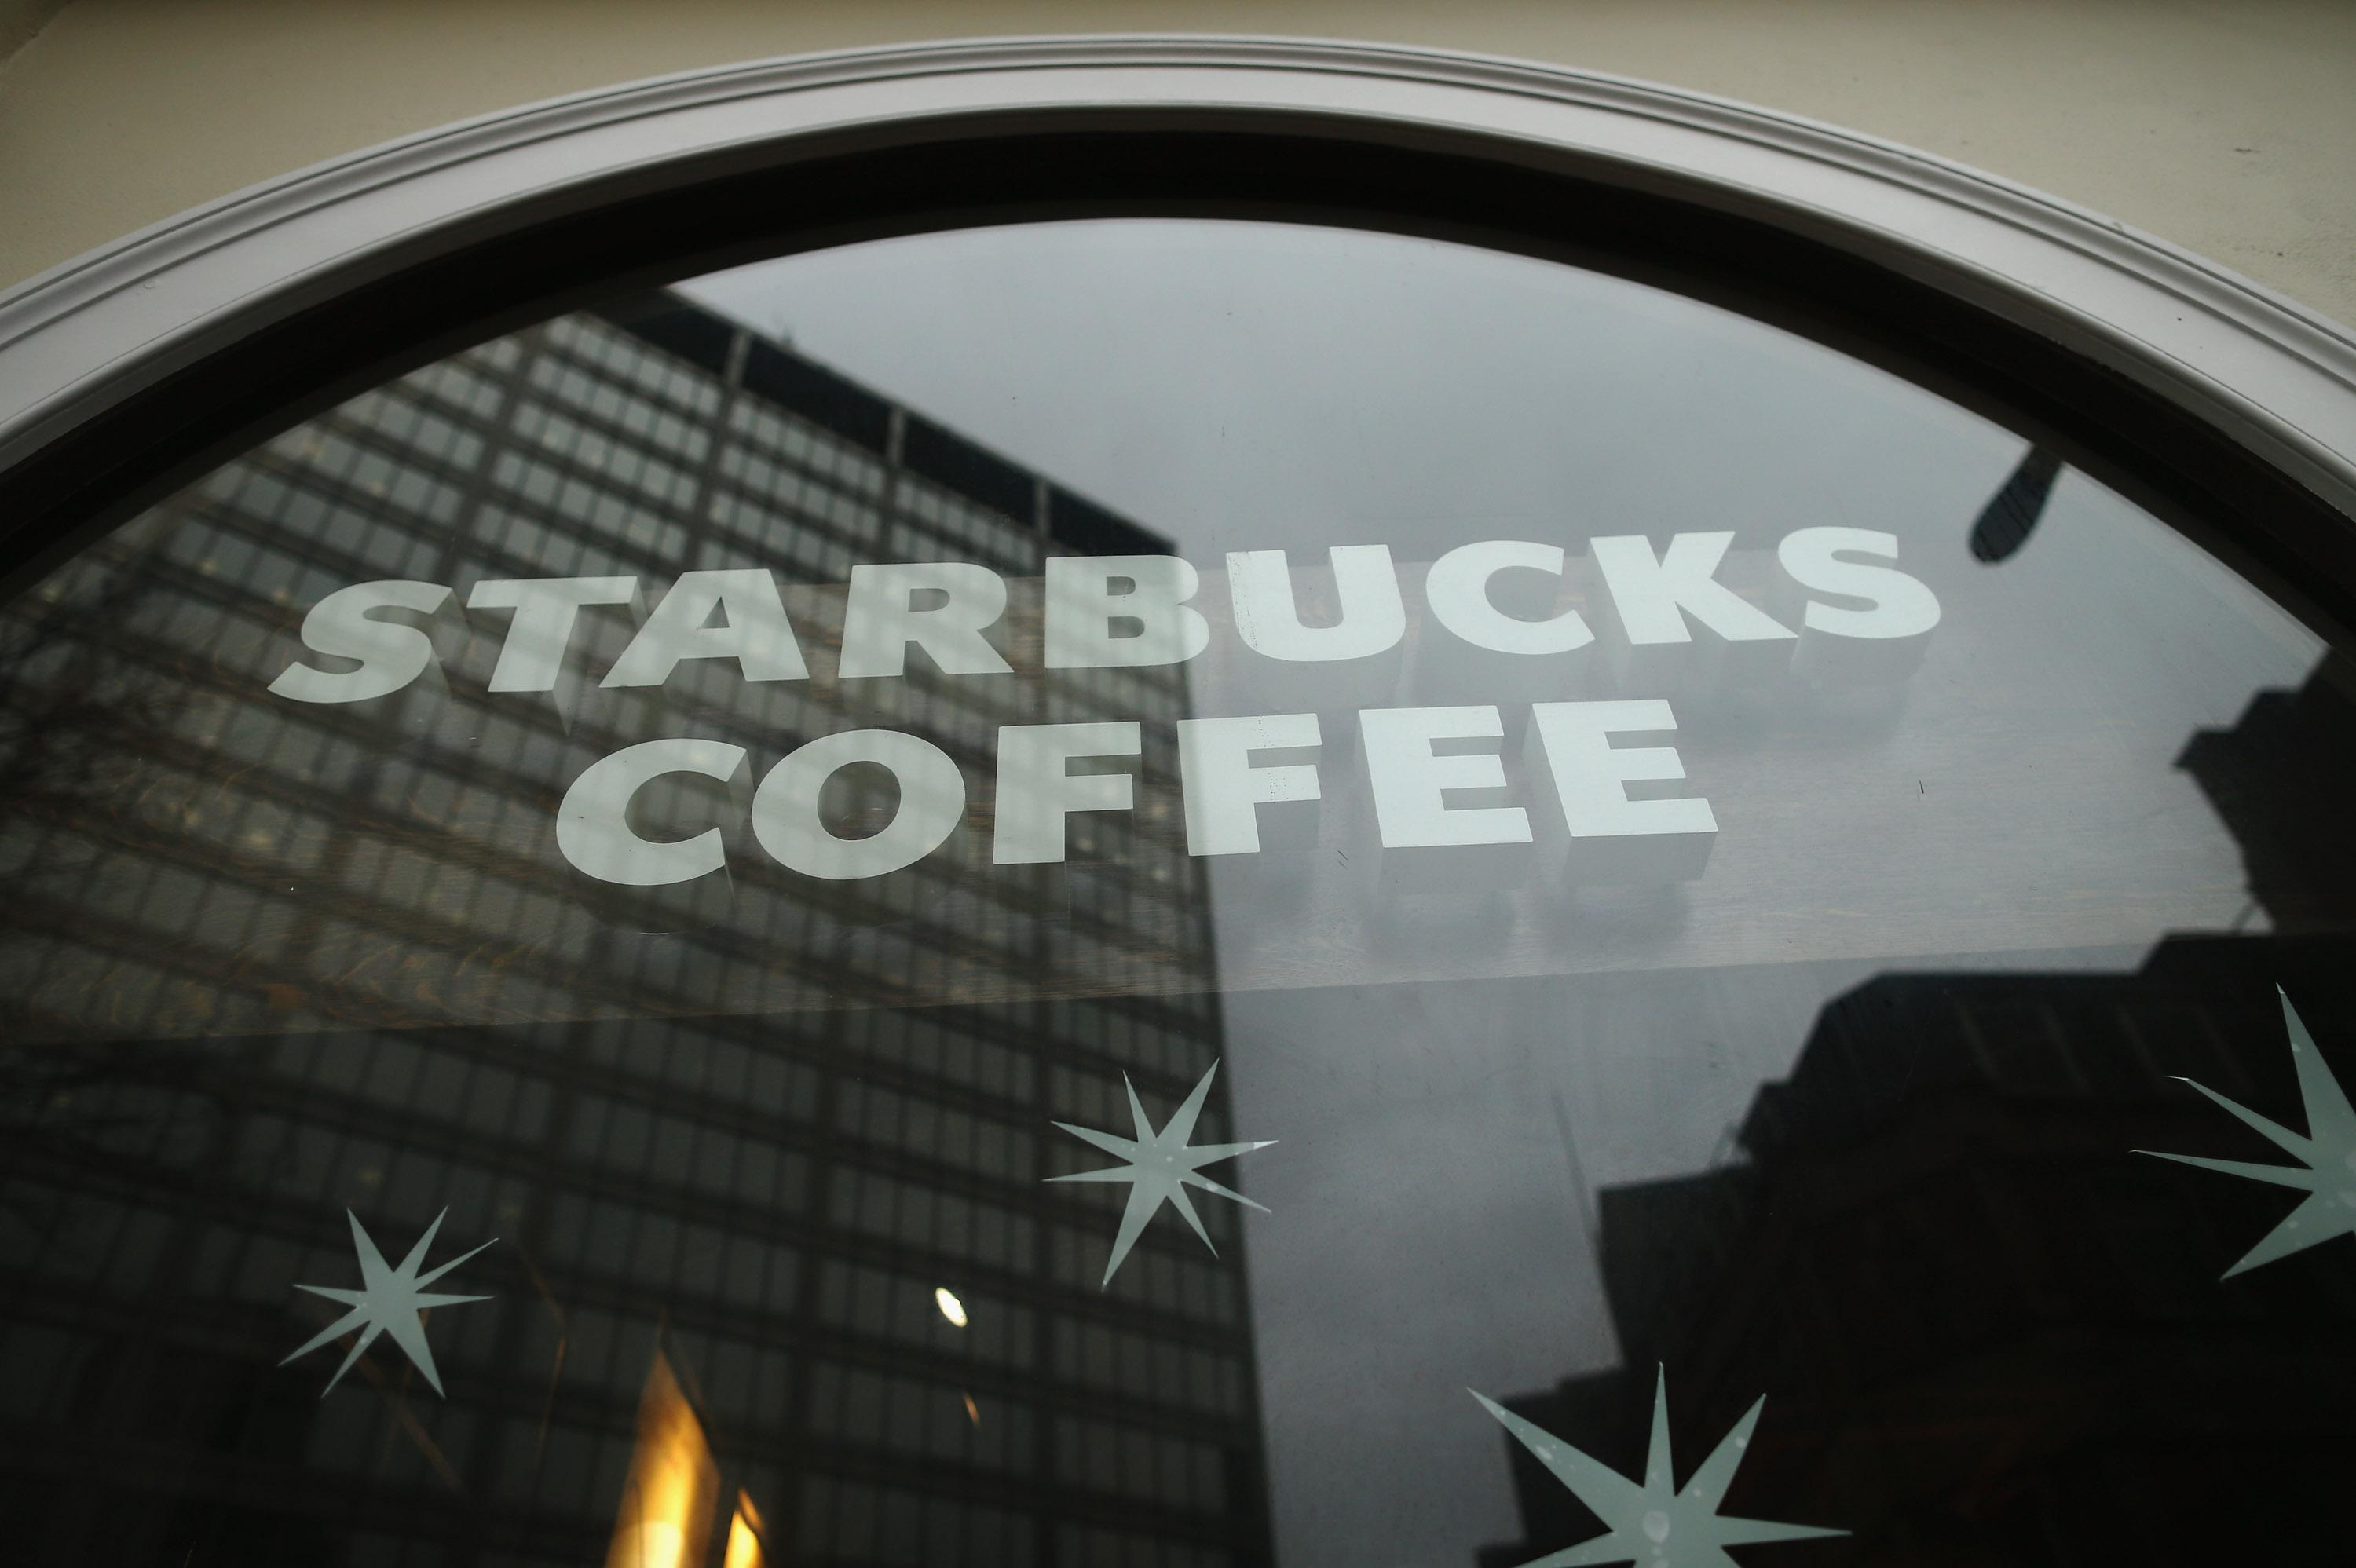 Starbucks Bow To Pressure And Agree To Tax Increase In The UK